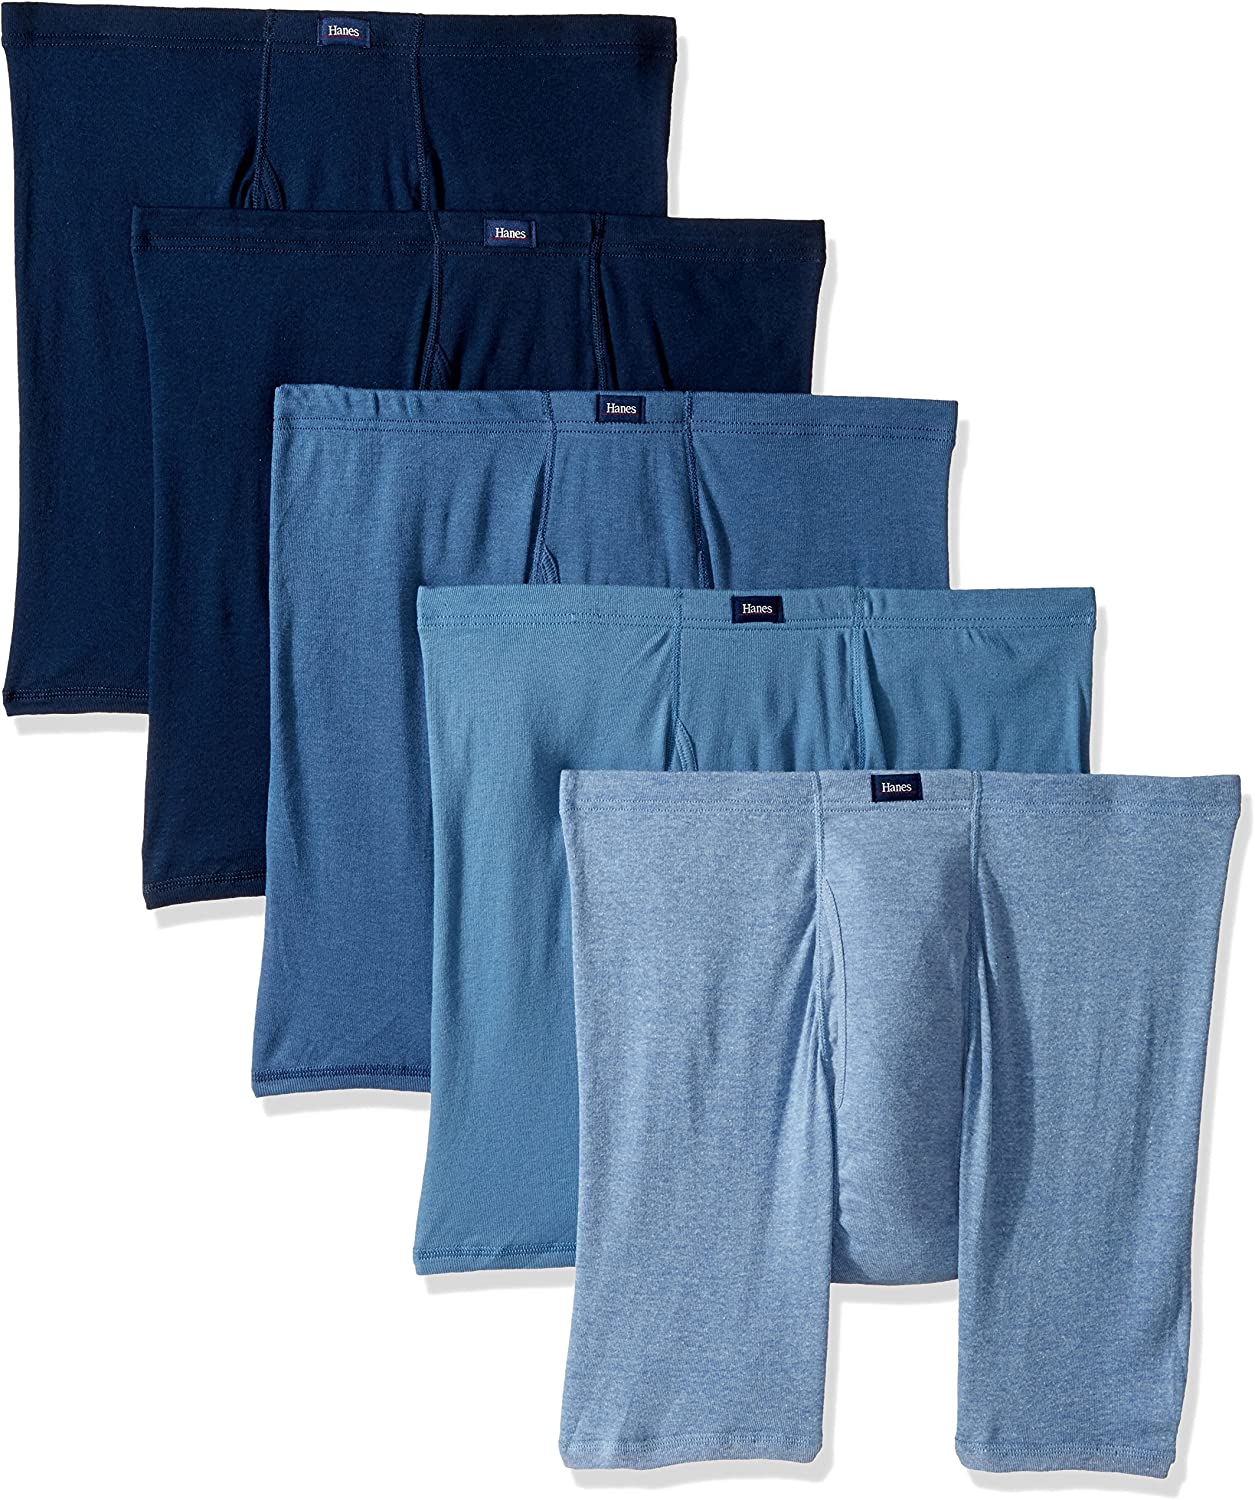 Hanes Ultimate Men's 5 Pack Ultimate Comfort Soft Waistband Boxer Briefs